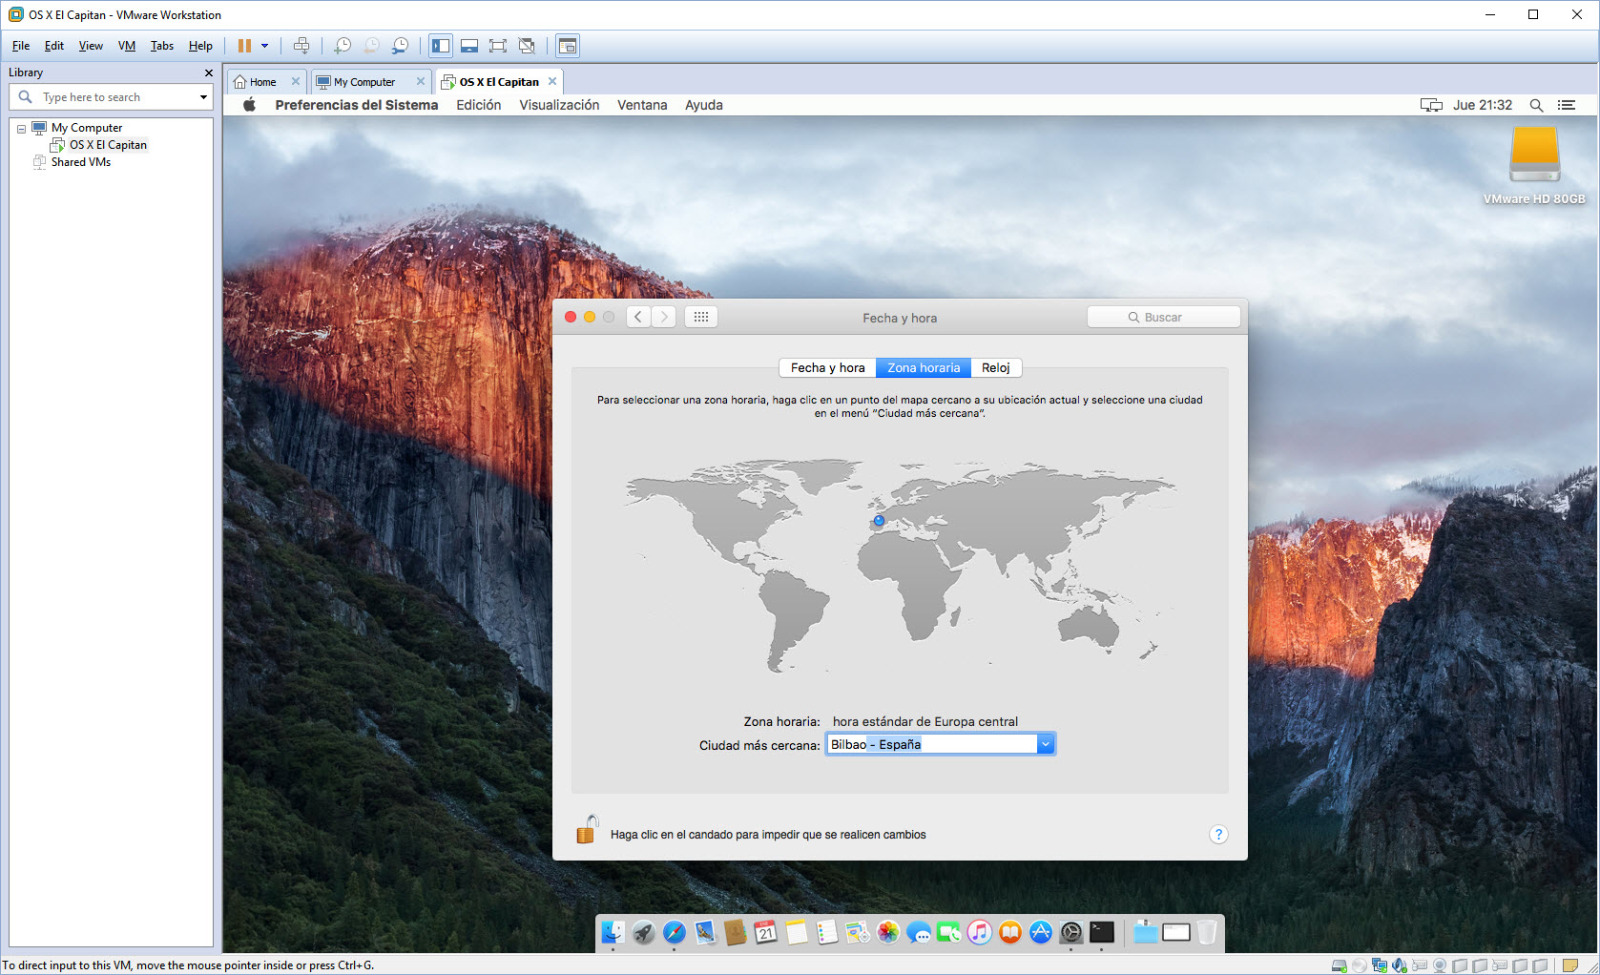 [TUTORIAL] VMWARE: INSTALANDO OS X EL CAPITÁN EN OS X Y WINDOWS... A LA BILBAÍNA 5althd